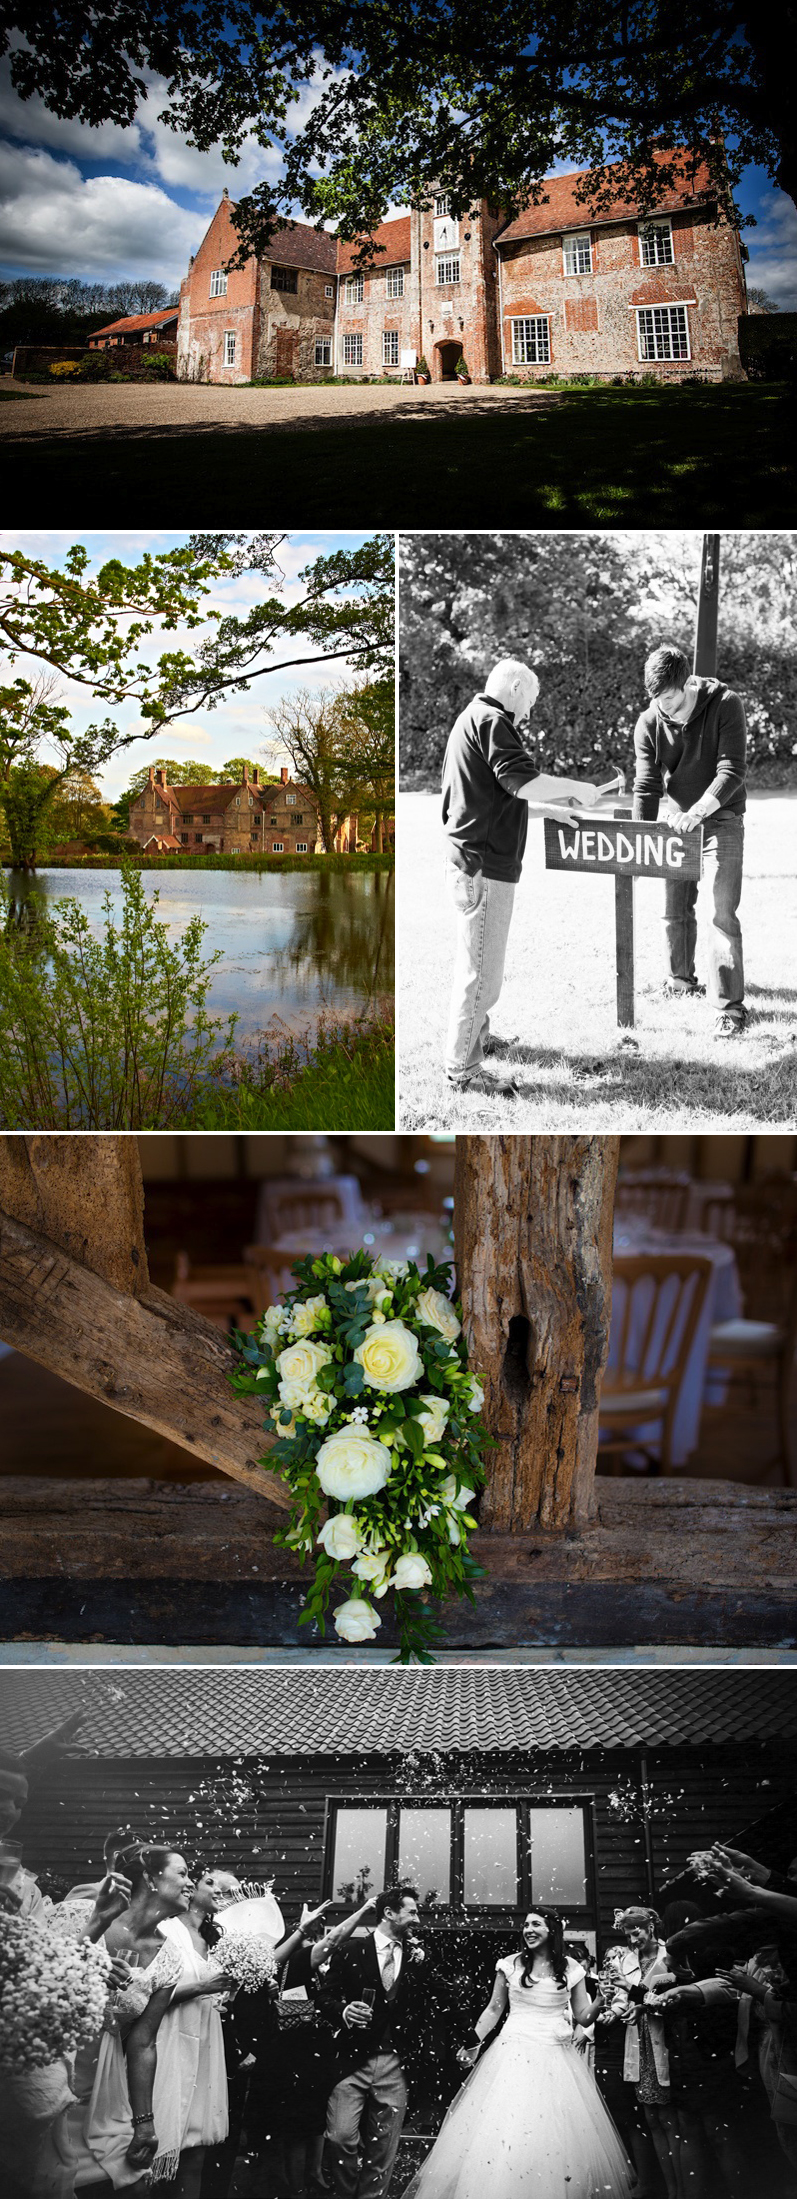 coco-wedding-venues-bruisyard-hall-coco-exclusive-offer-101